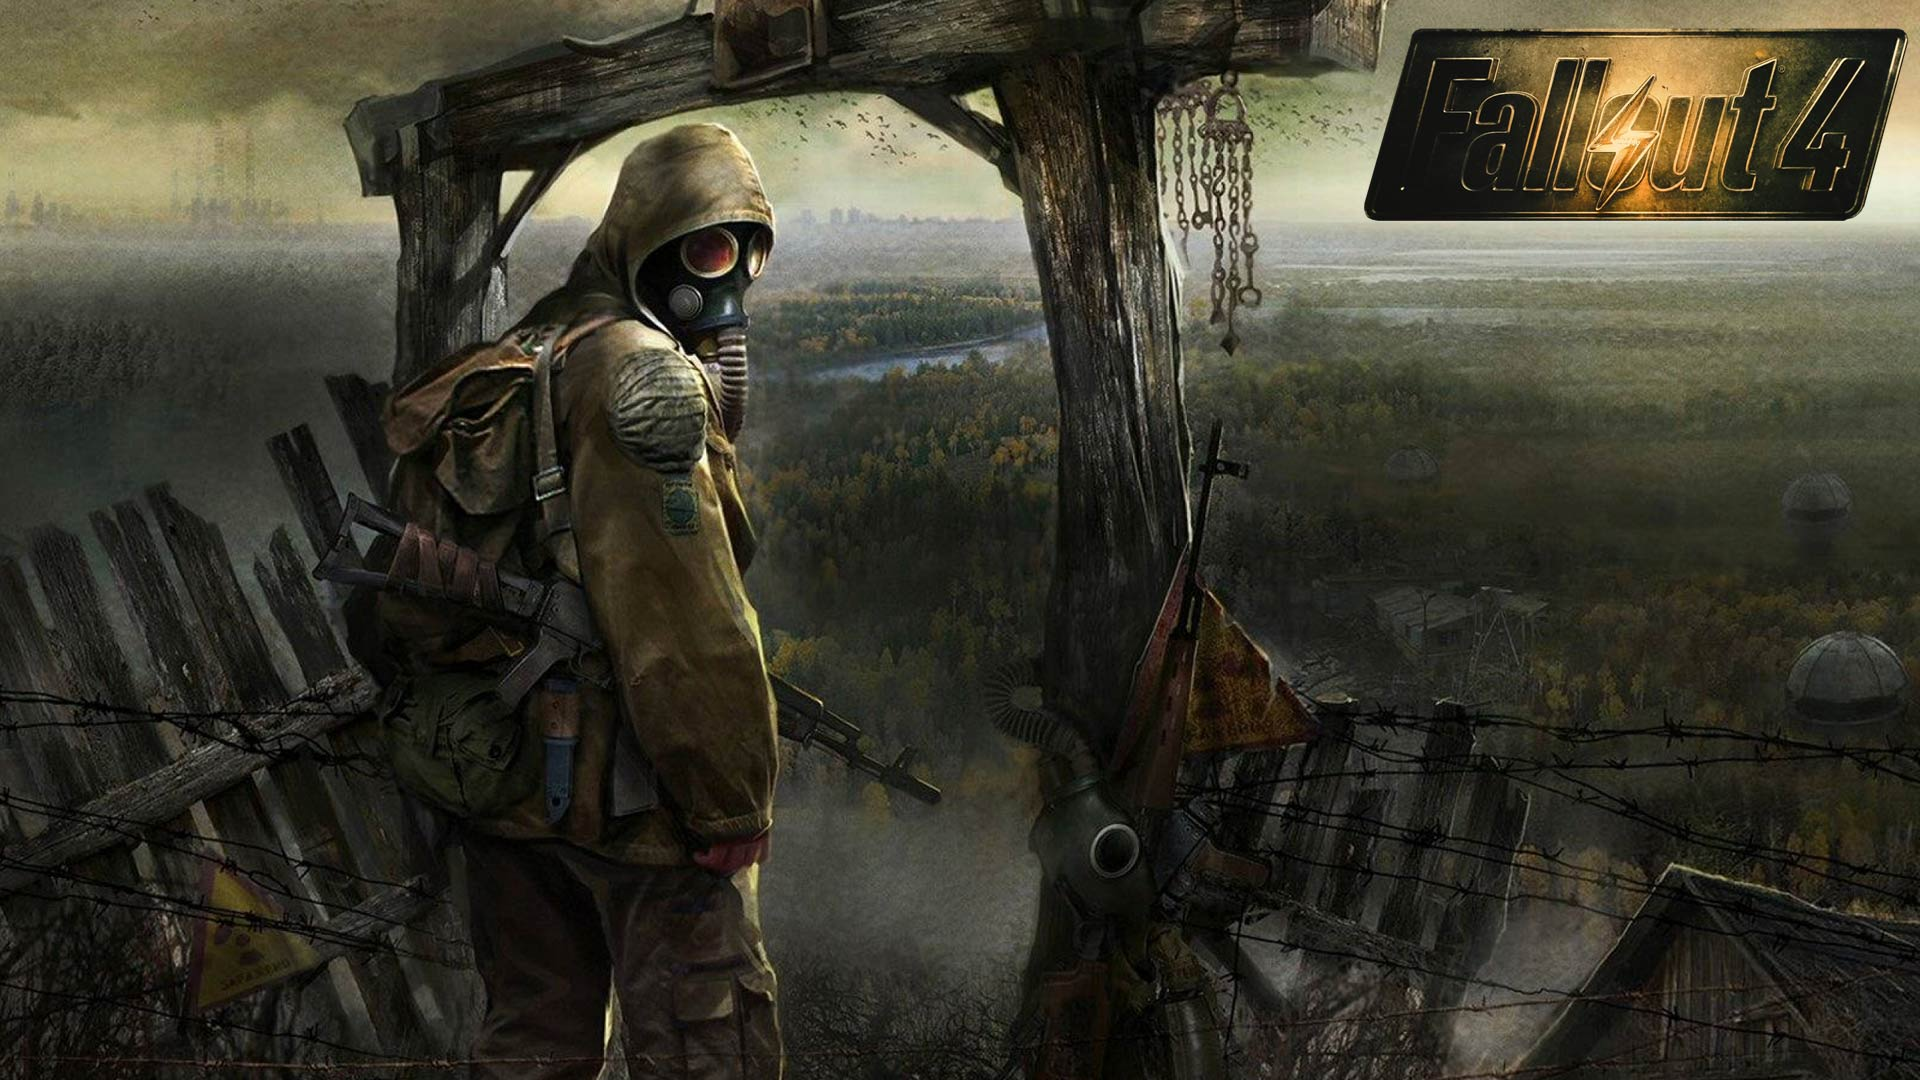 on October 2 2015 By Stephen Comments Off on Fallout 4 HD Wallpaper 1920x1080